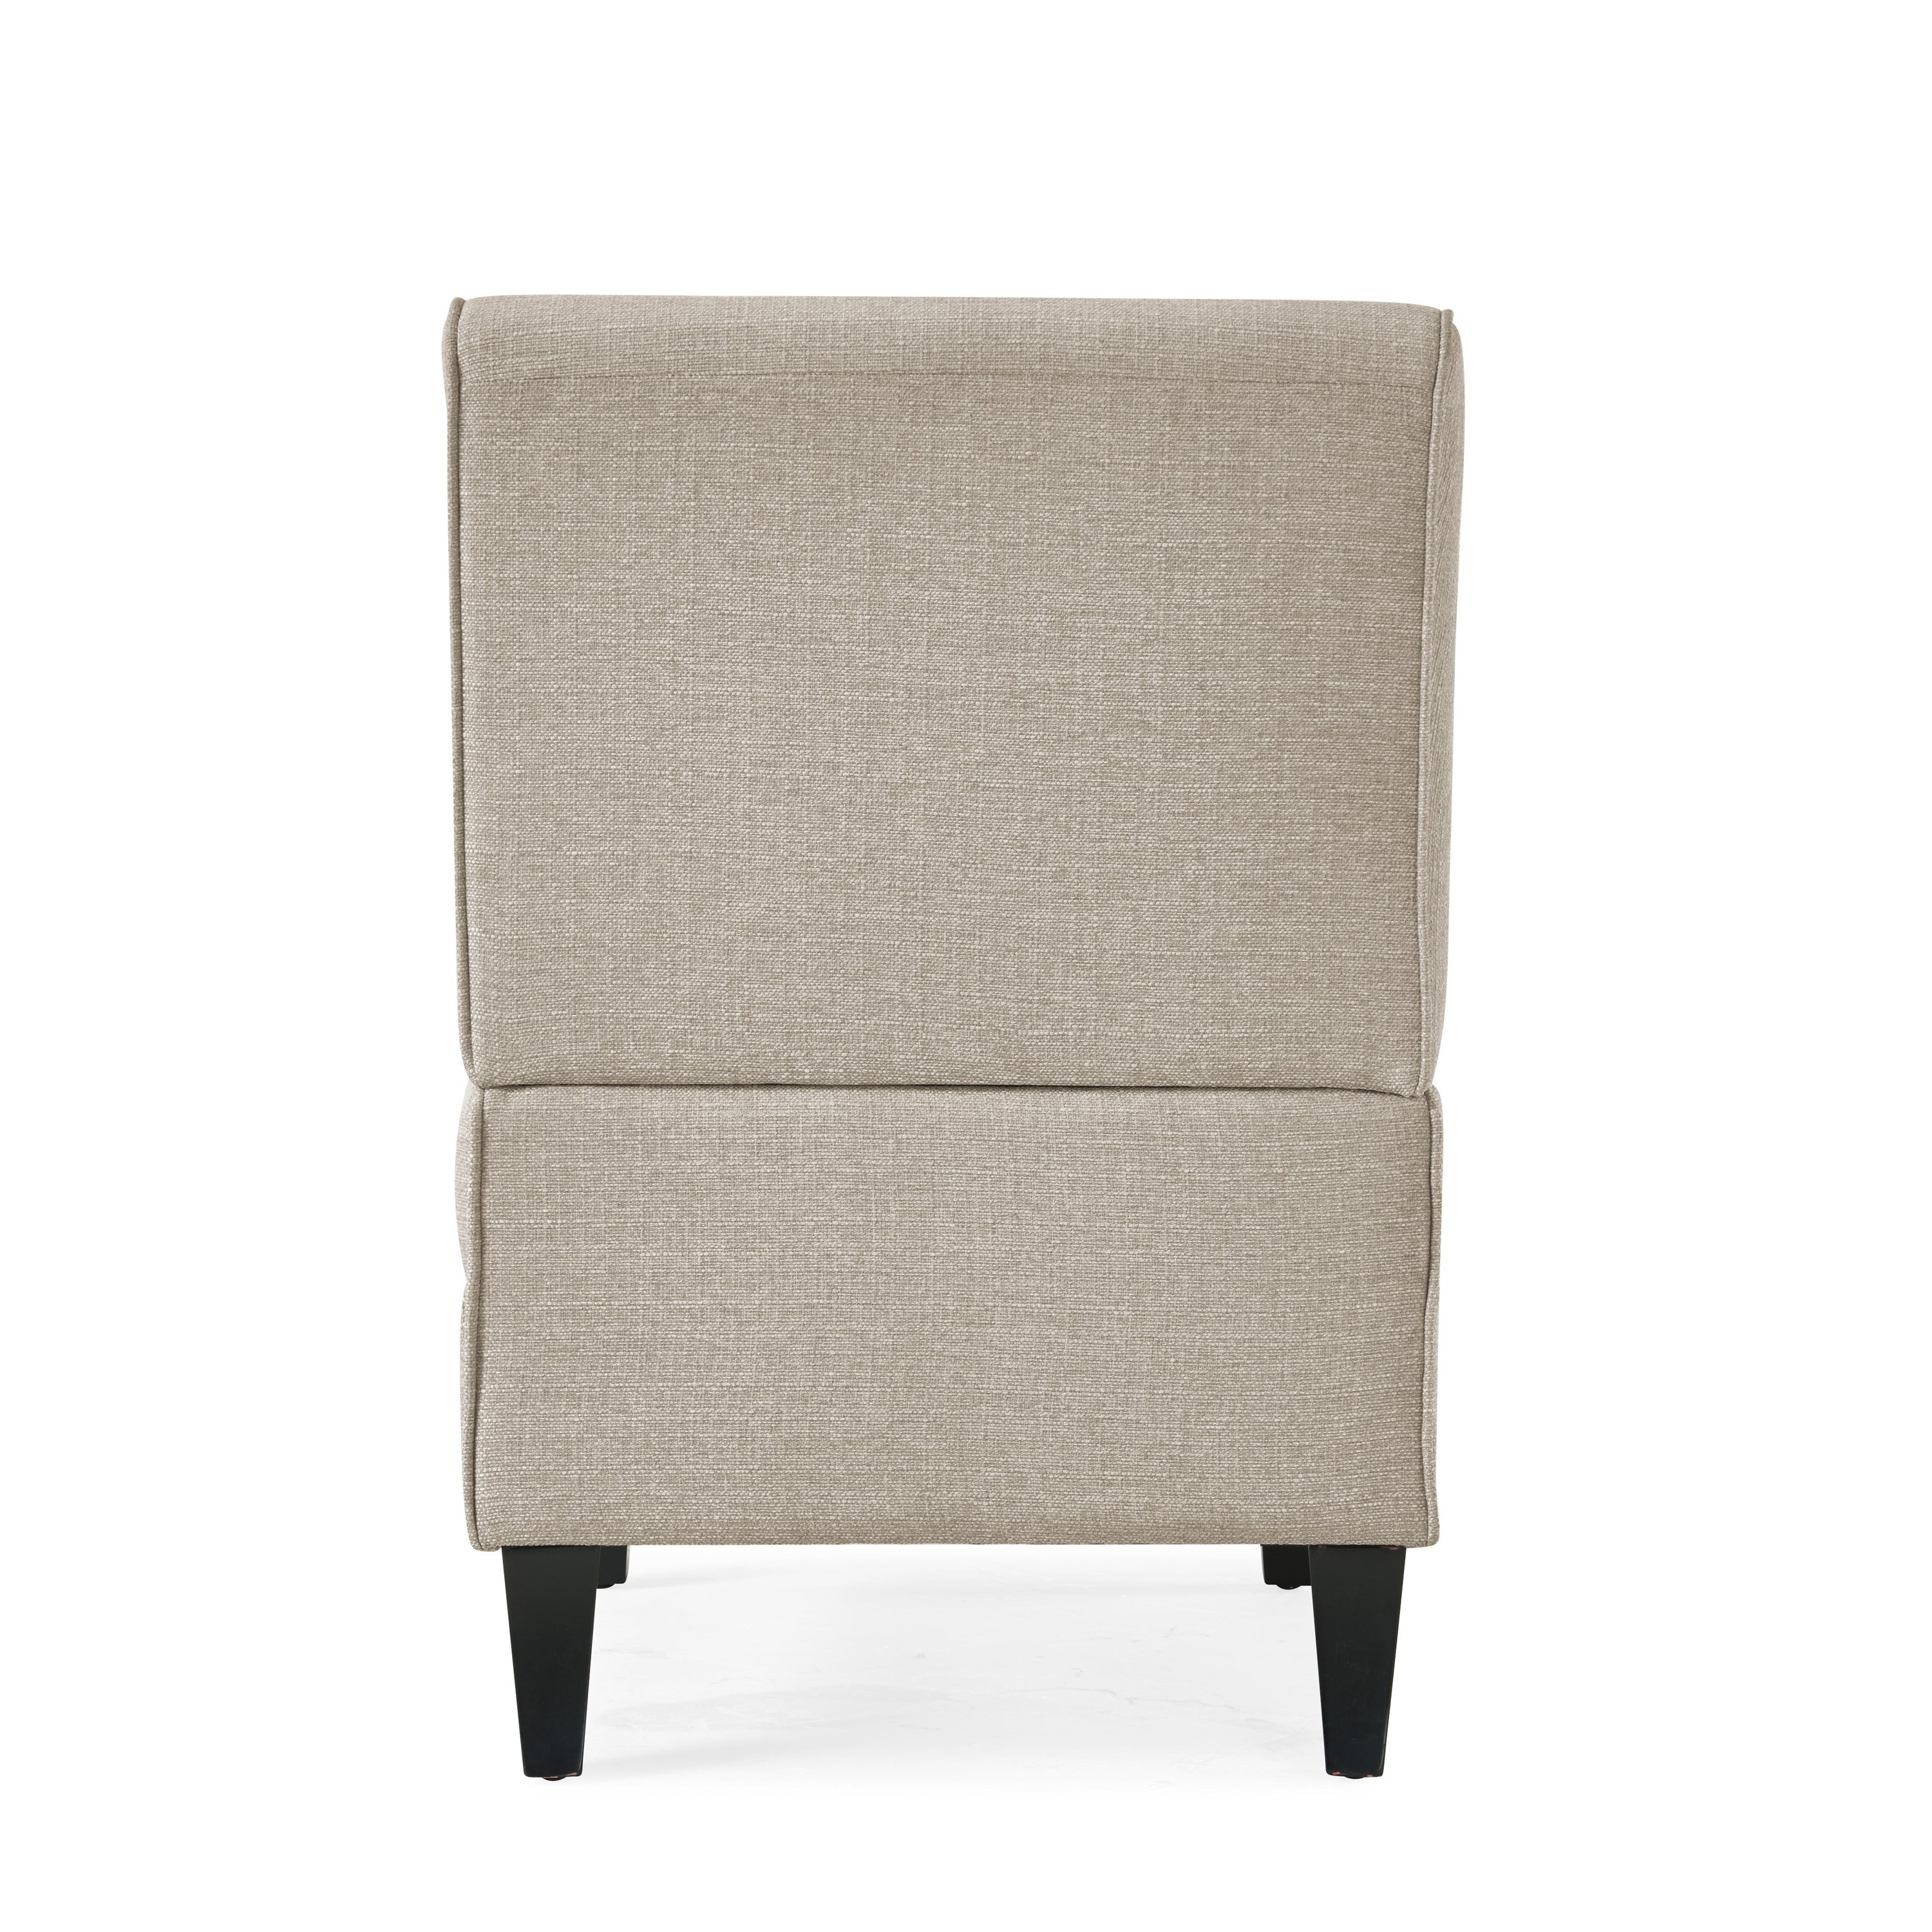 Armless Oatmeal Dining Chairs In Fashionable Shop Handy Living Courtney Oatmeal Linen Armless Chair – On Sale (View 2 of 20)